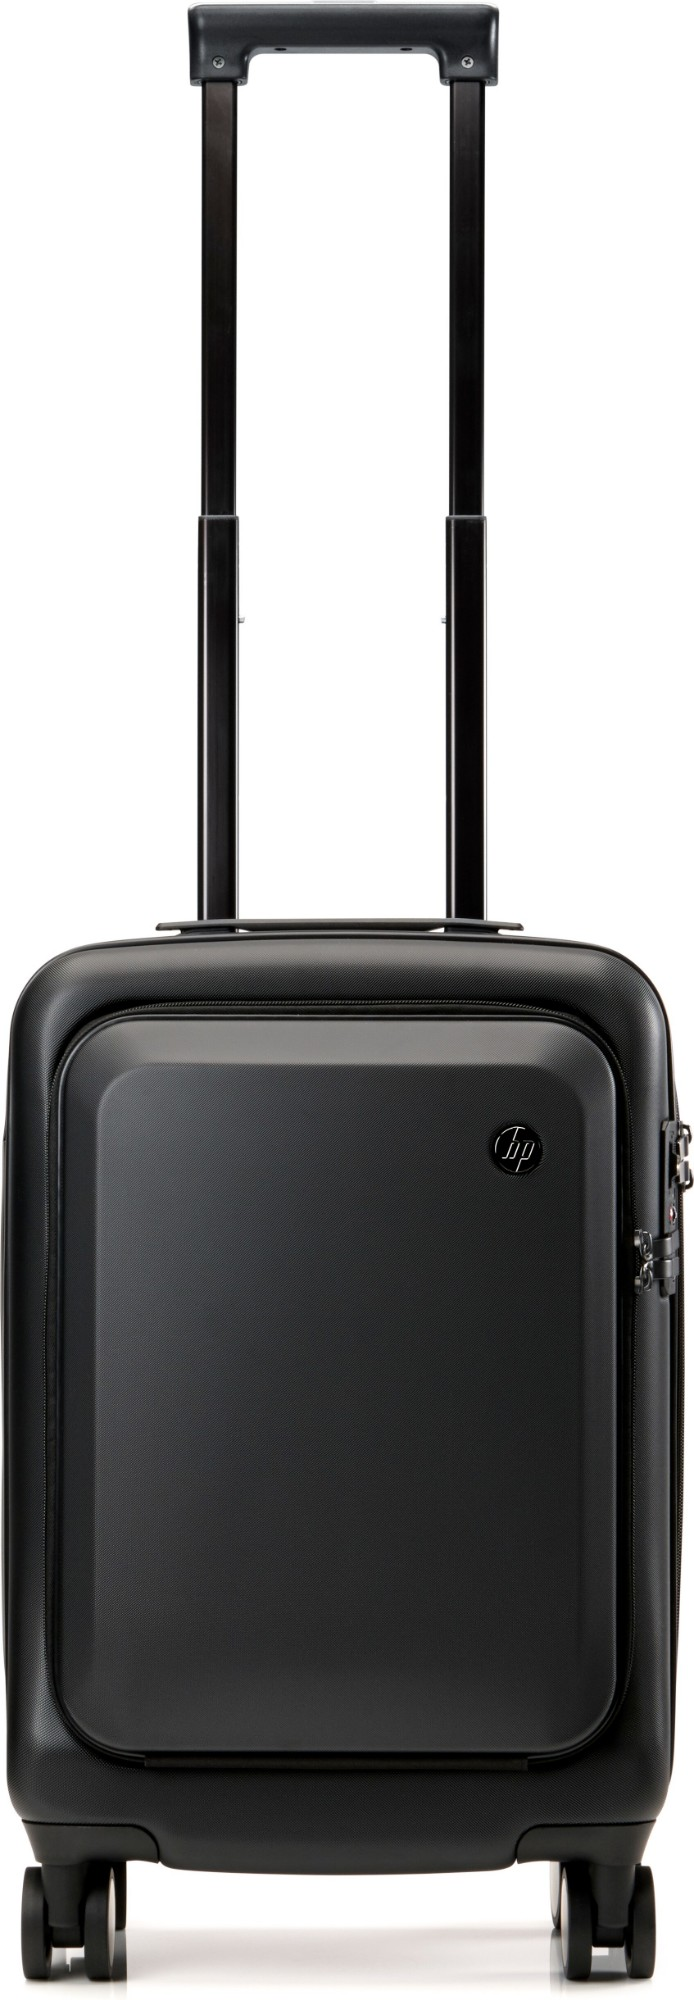 HP All in One Carry On Luggage Tranvía Negro Acrilonitrilo butadieno estireno (ABS), Policarbonato